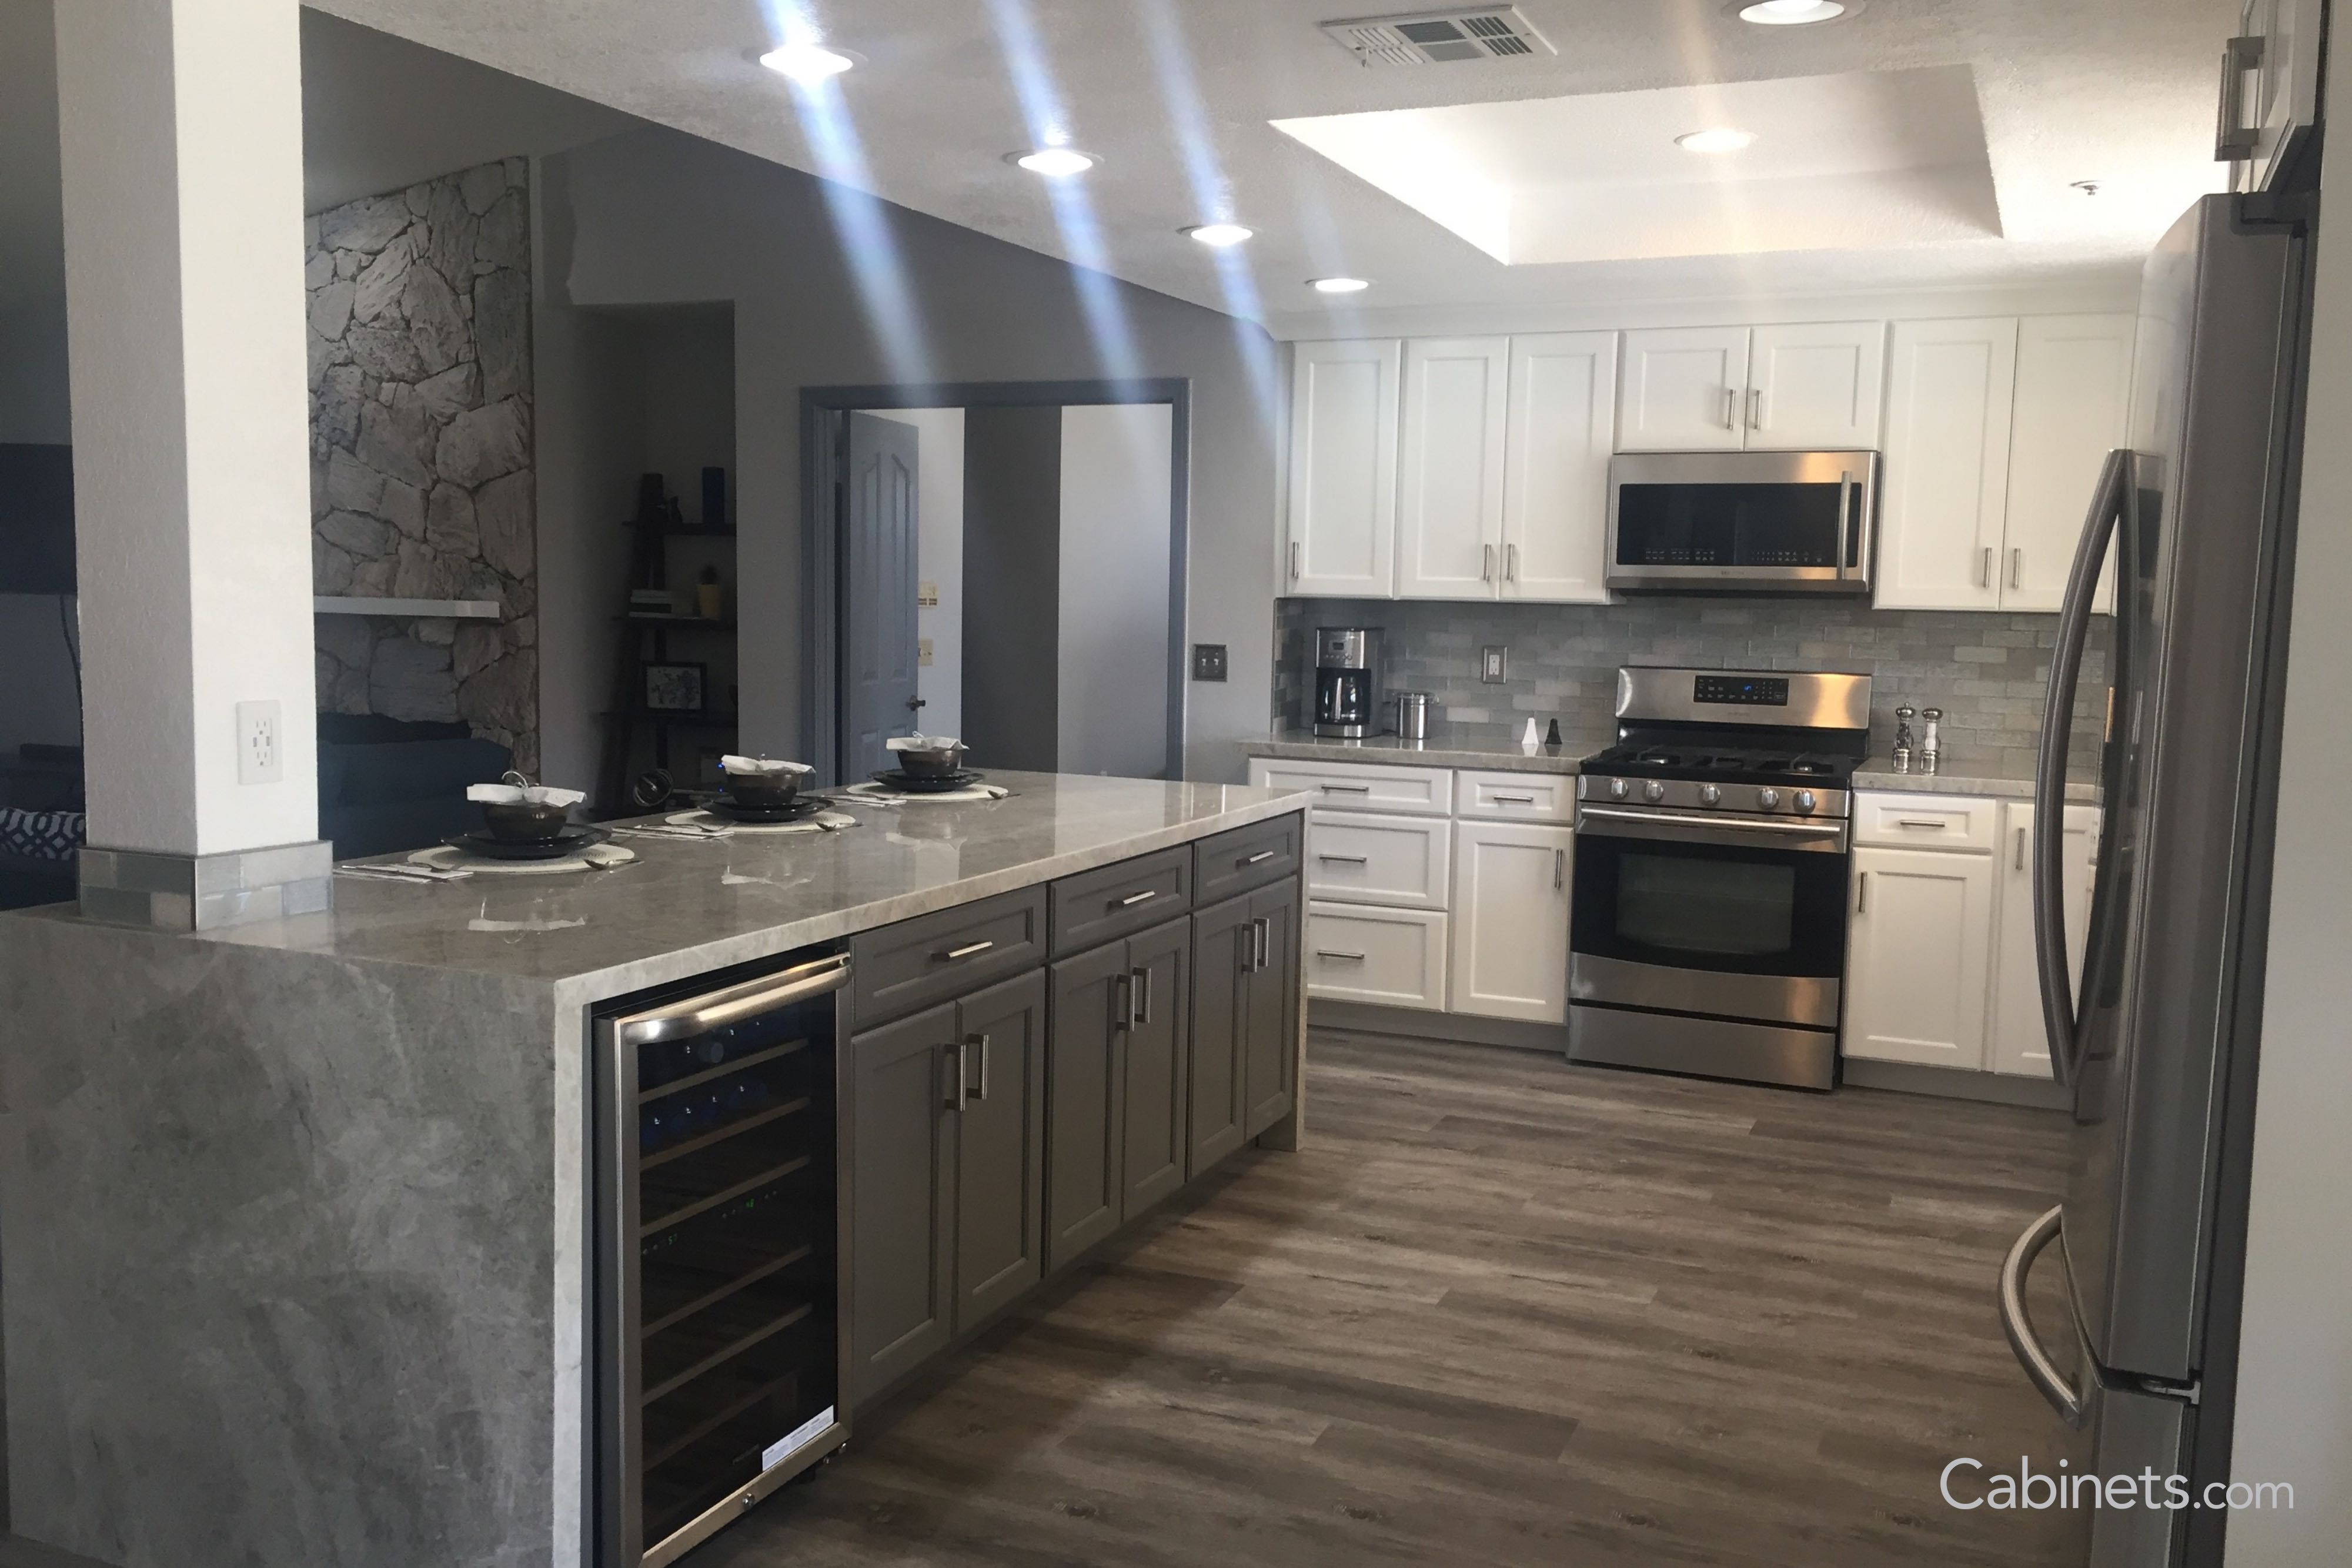 This Open Kitchen Features A Grey Waterfall Island Buy Kitchen Cabinets Online Online Kitchen Cabinets Buy Kitchen Cabinets